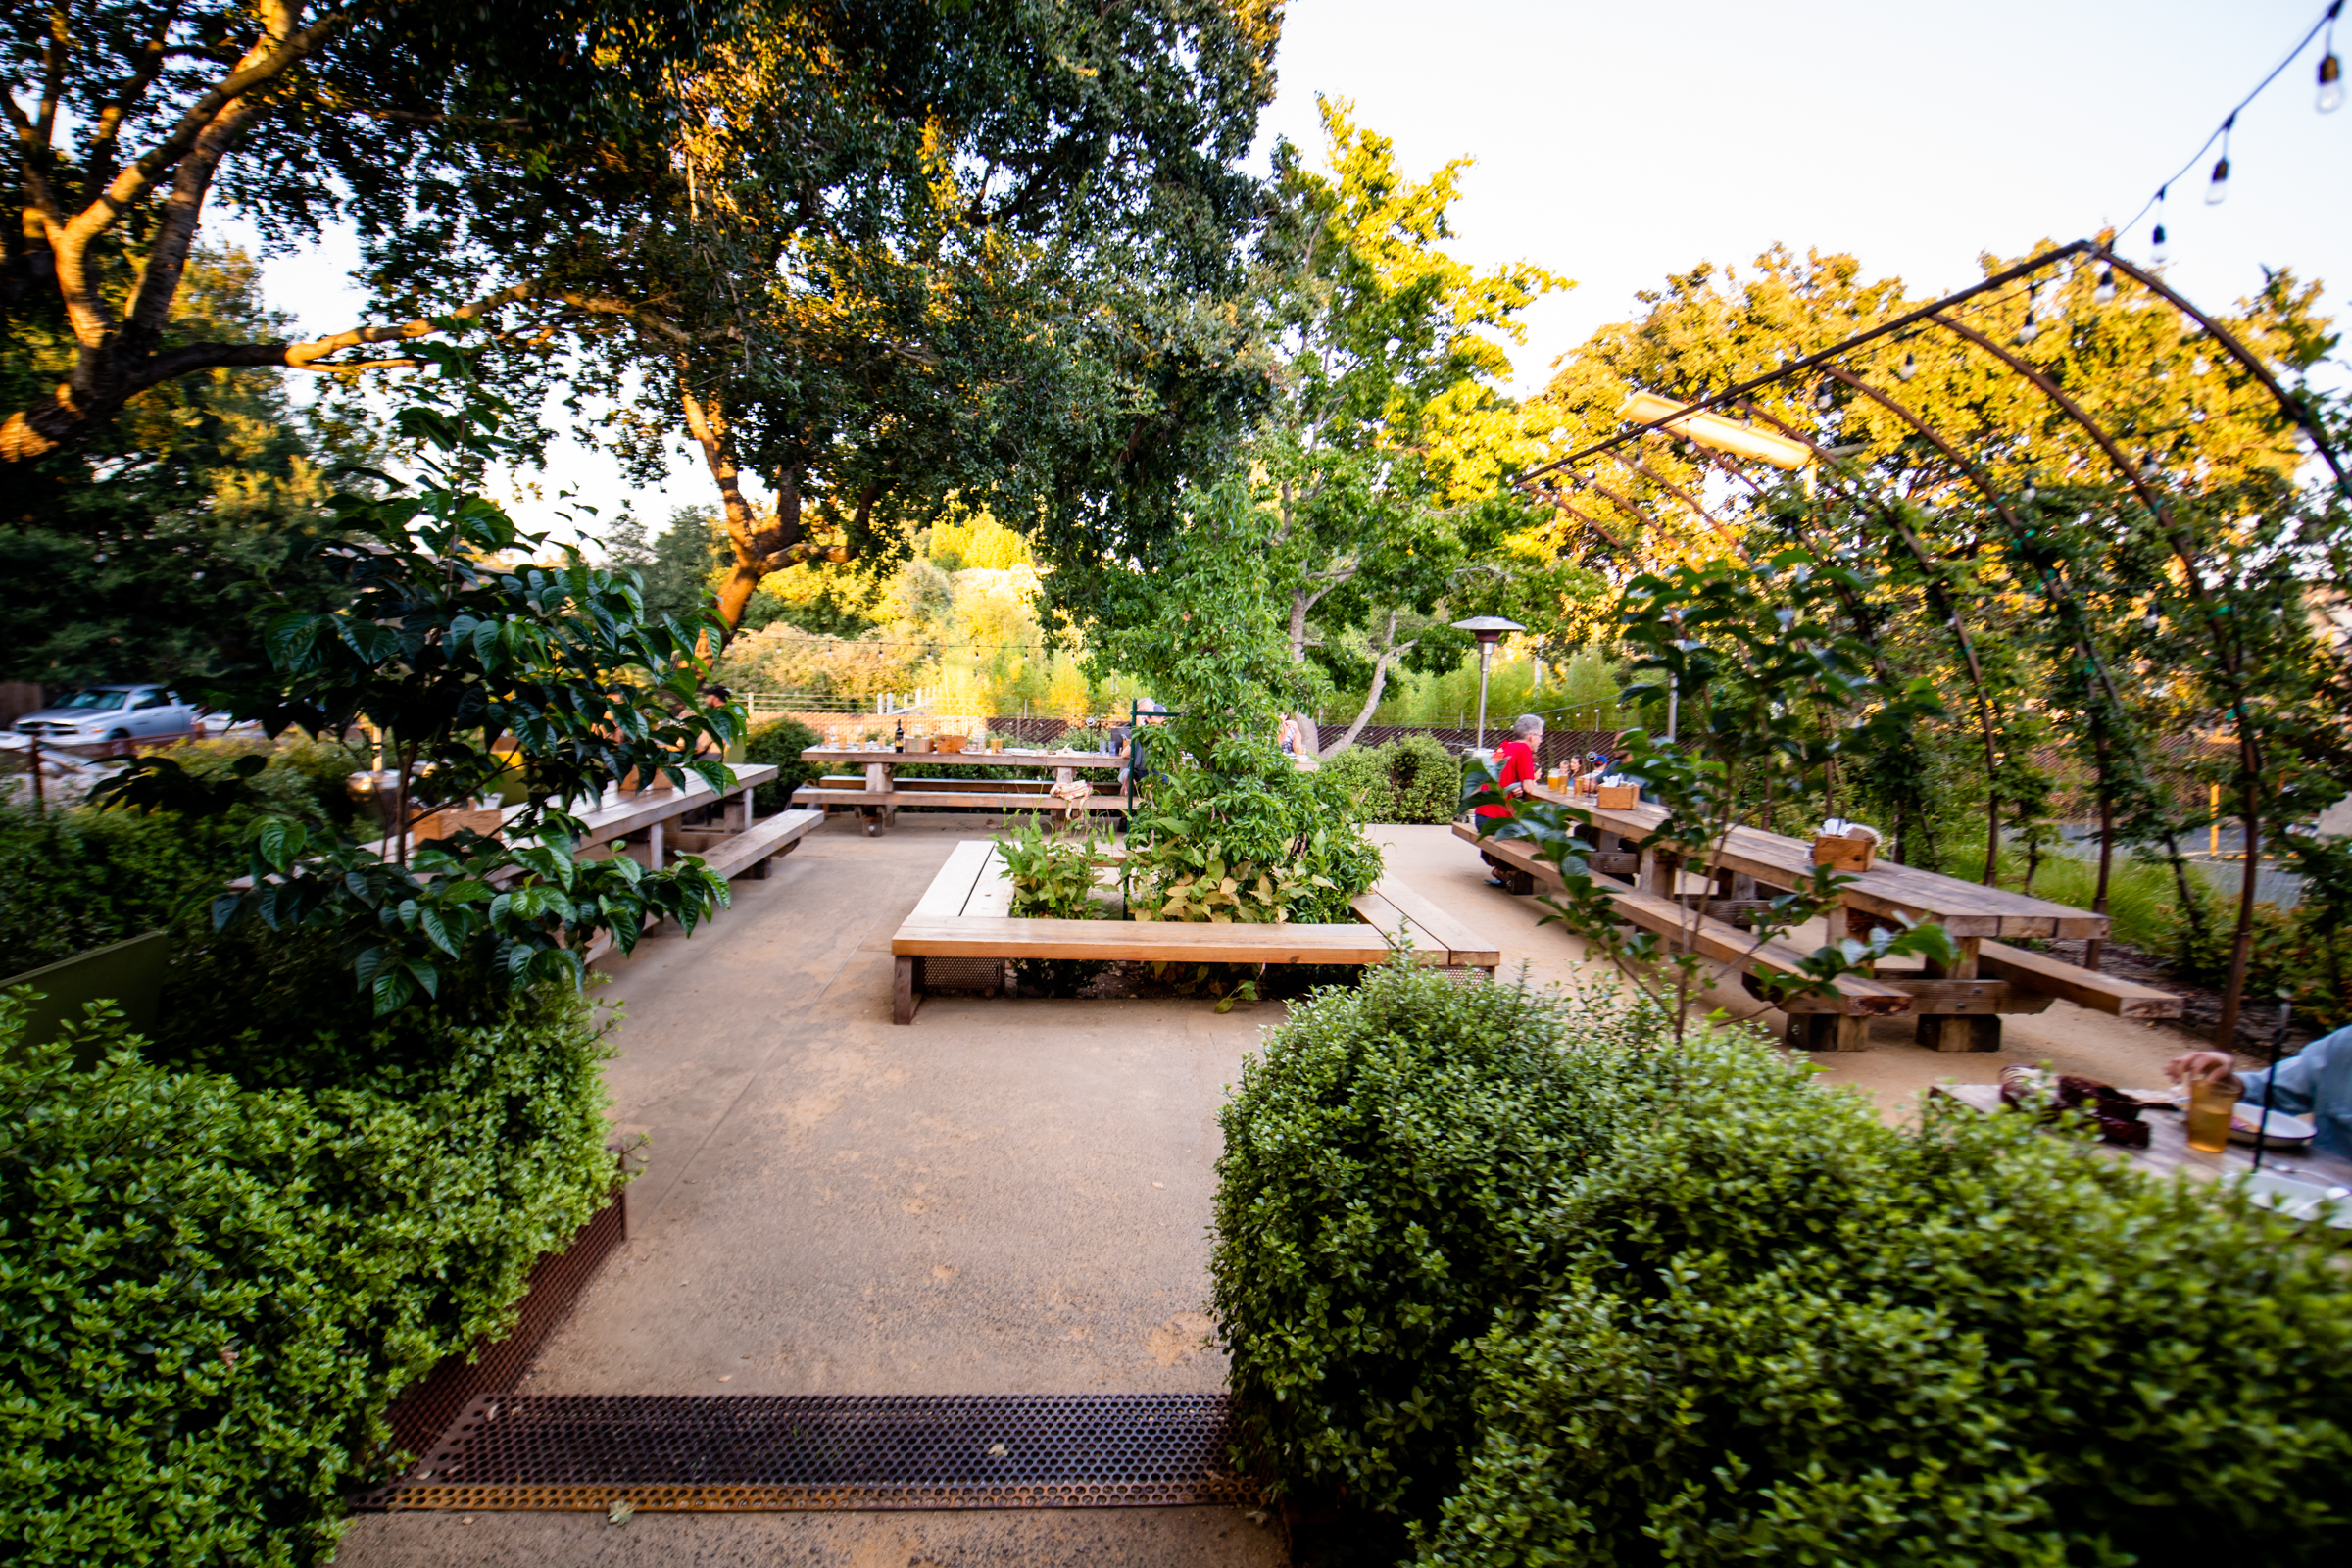 Although our large reservations and events are traditionally held in the Lower Patio area, we do rent out the Upper Patio for exclusive use. This space has three extra-large picnic-style tables that seat up to 20 each in addition to large and small tables, with seating for up to 80 people. Pricing varies based on time, day, and month of the year.